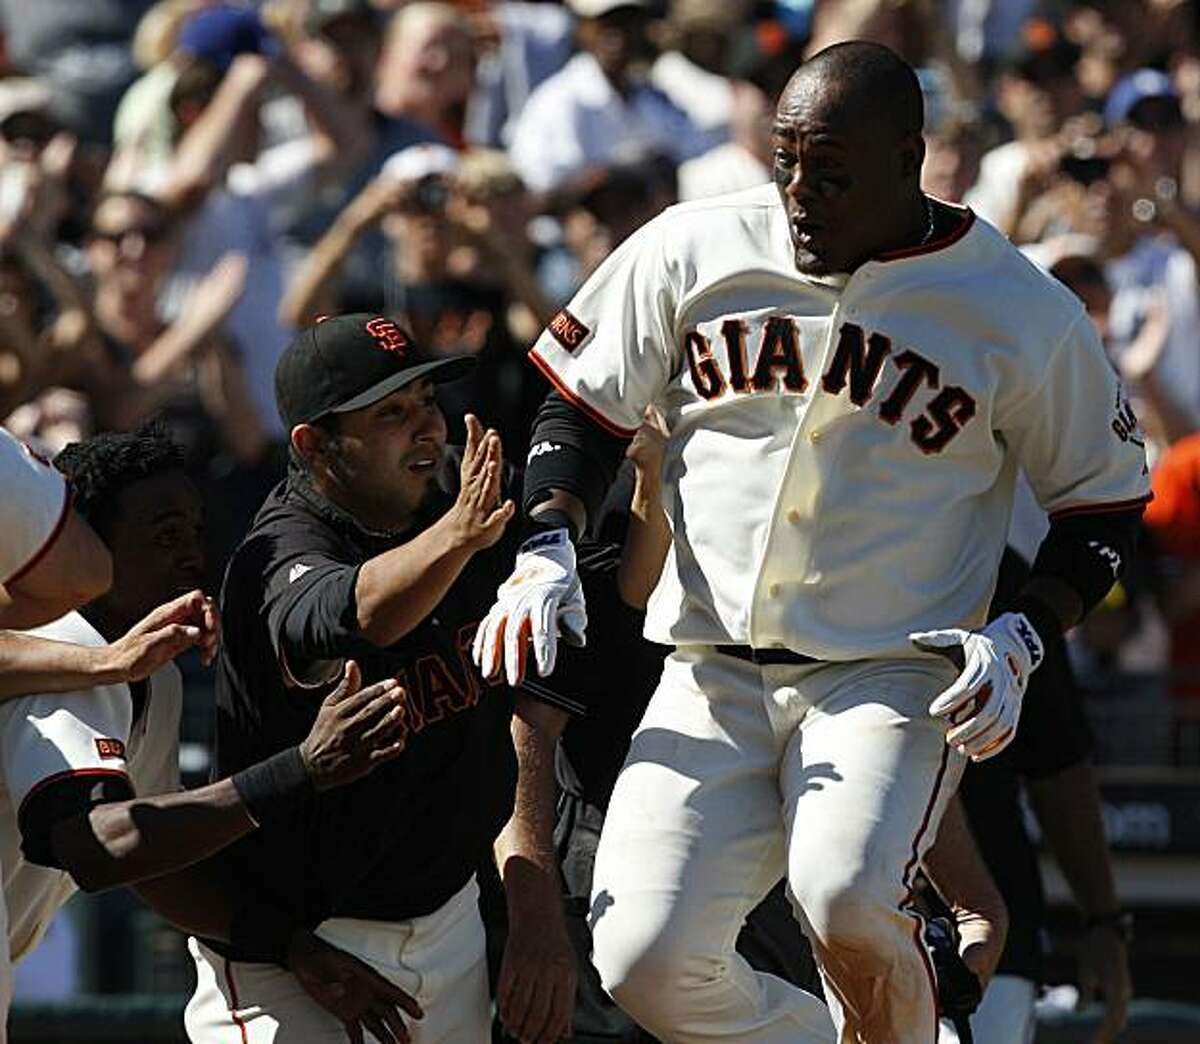 San Francisco Giants Juan Uribe jumps on home plate surrounded by his teammates after hitting a walk-off homer in the 10th inning to beat the L.A Dodgers 4-2 at AT&T in San Francisco, Calif., on August 12, 2009.